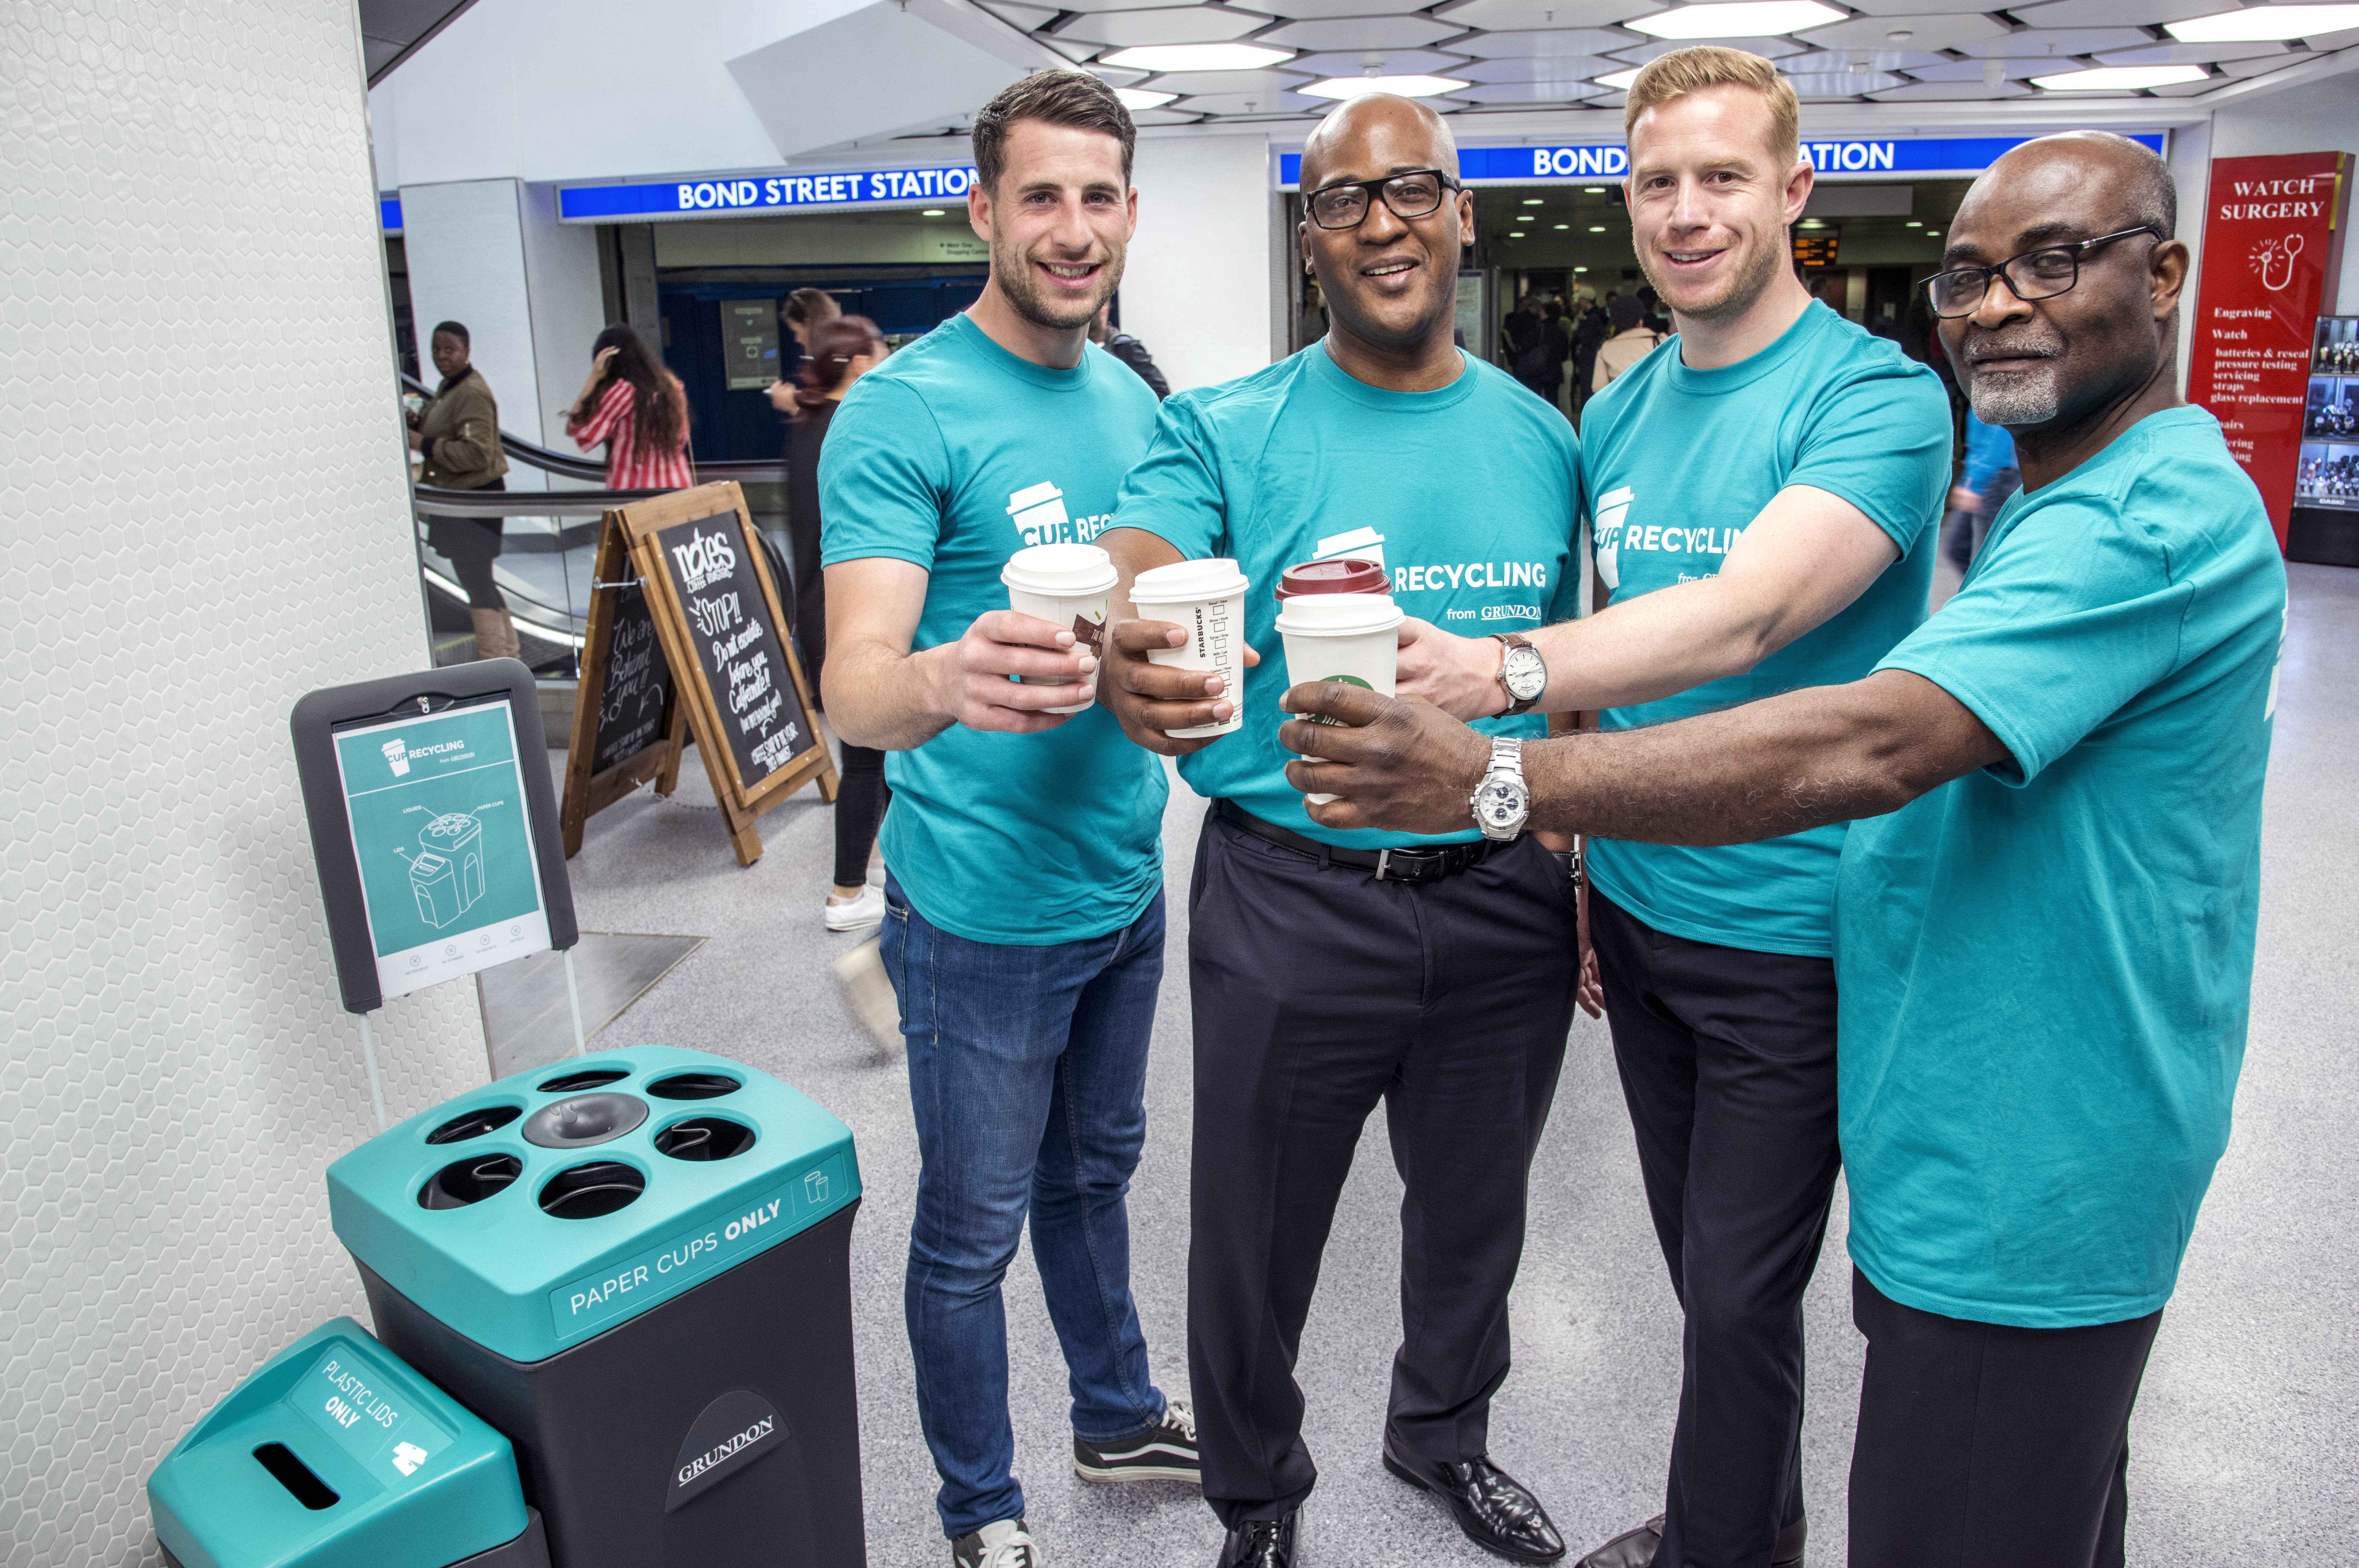 Grundon launch new cup recycling service at West One Shopping Centre: Grundon's Head of Sales, Stephen Hill; West One's Cyrus Annan, Centre Manager; Jack Yarrow, Grundon's Regional Sales Manager; and Victor Nunoo, Operations Manager at West One